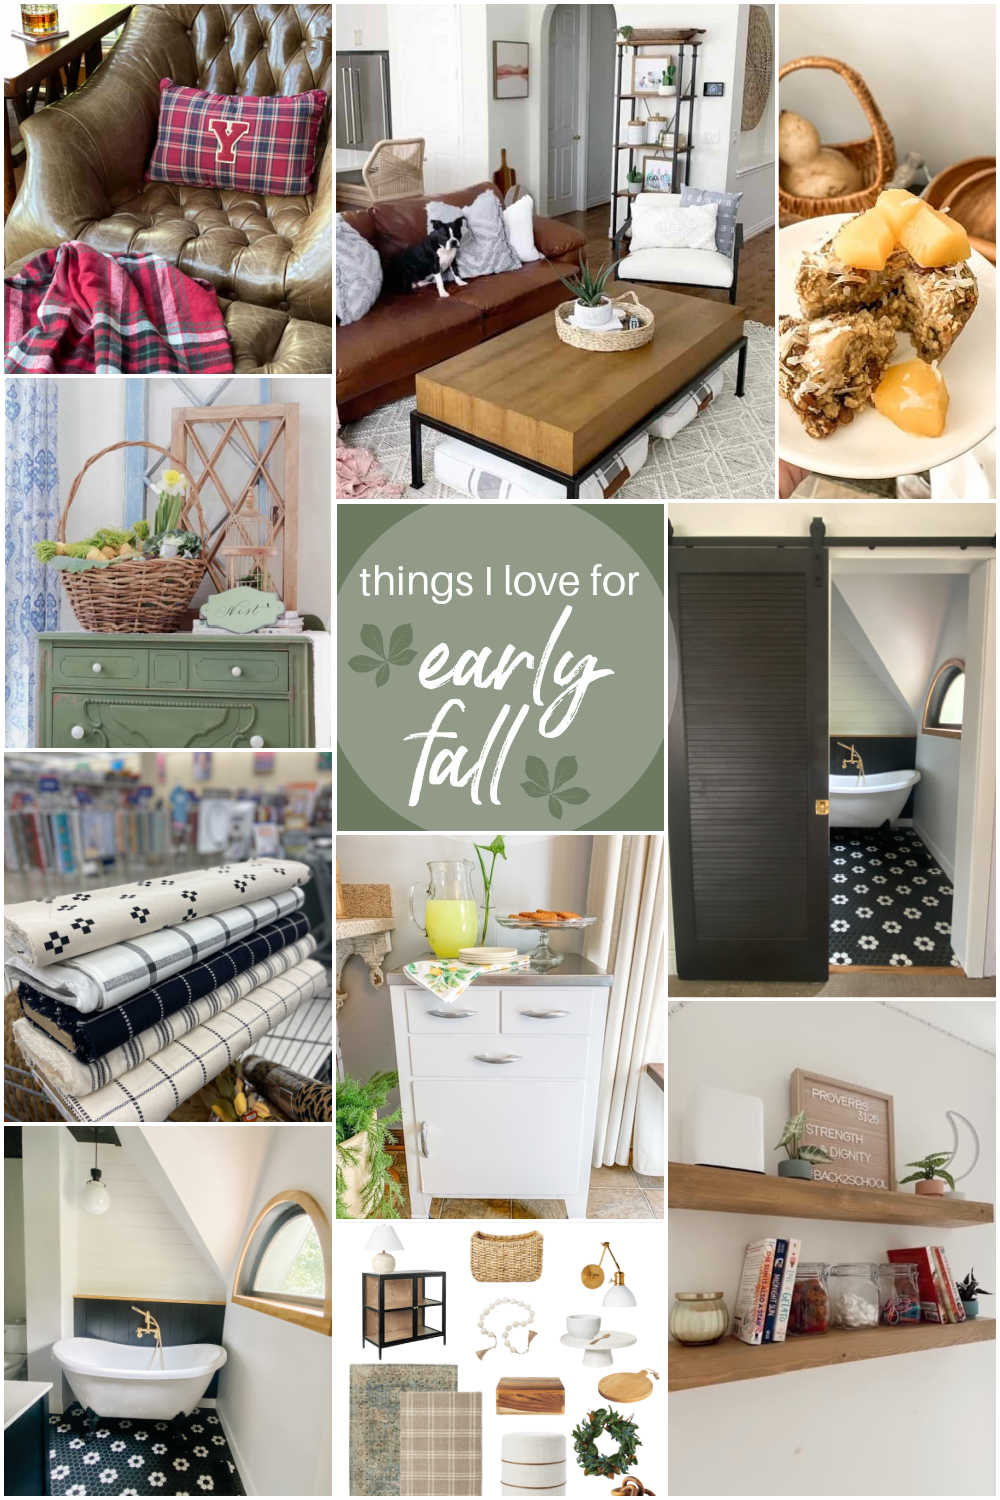 Welcome Home Saturday - Things I Love For Early Fall! DIY projects, bathroom remodel update and things I love this week!